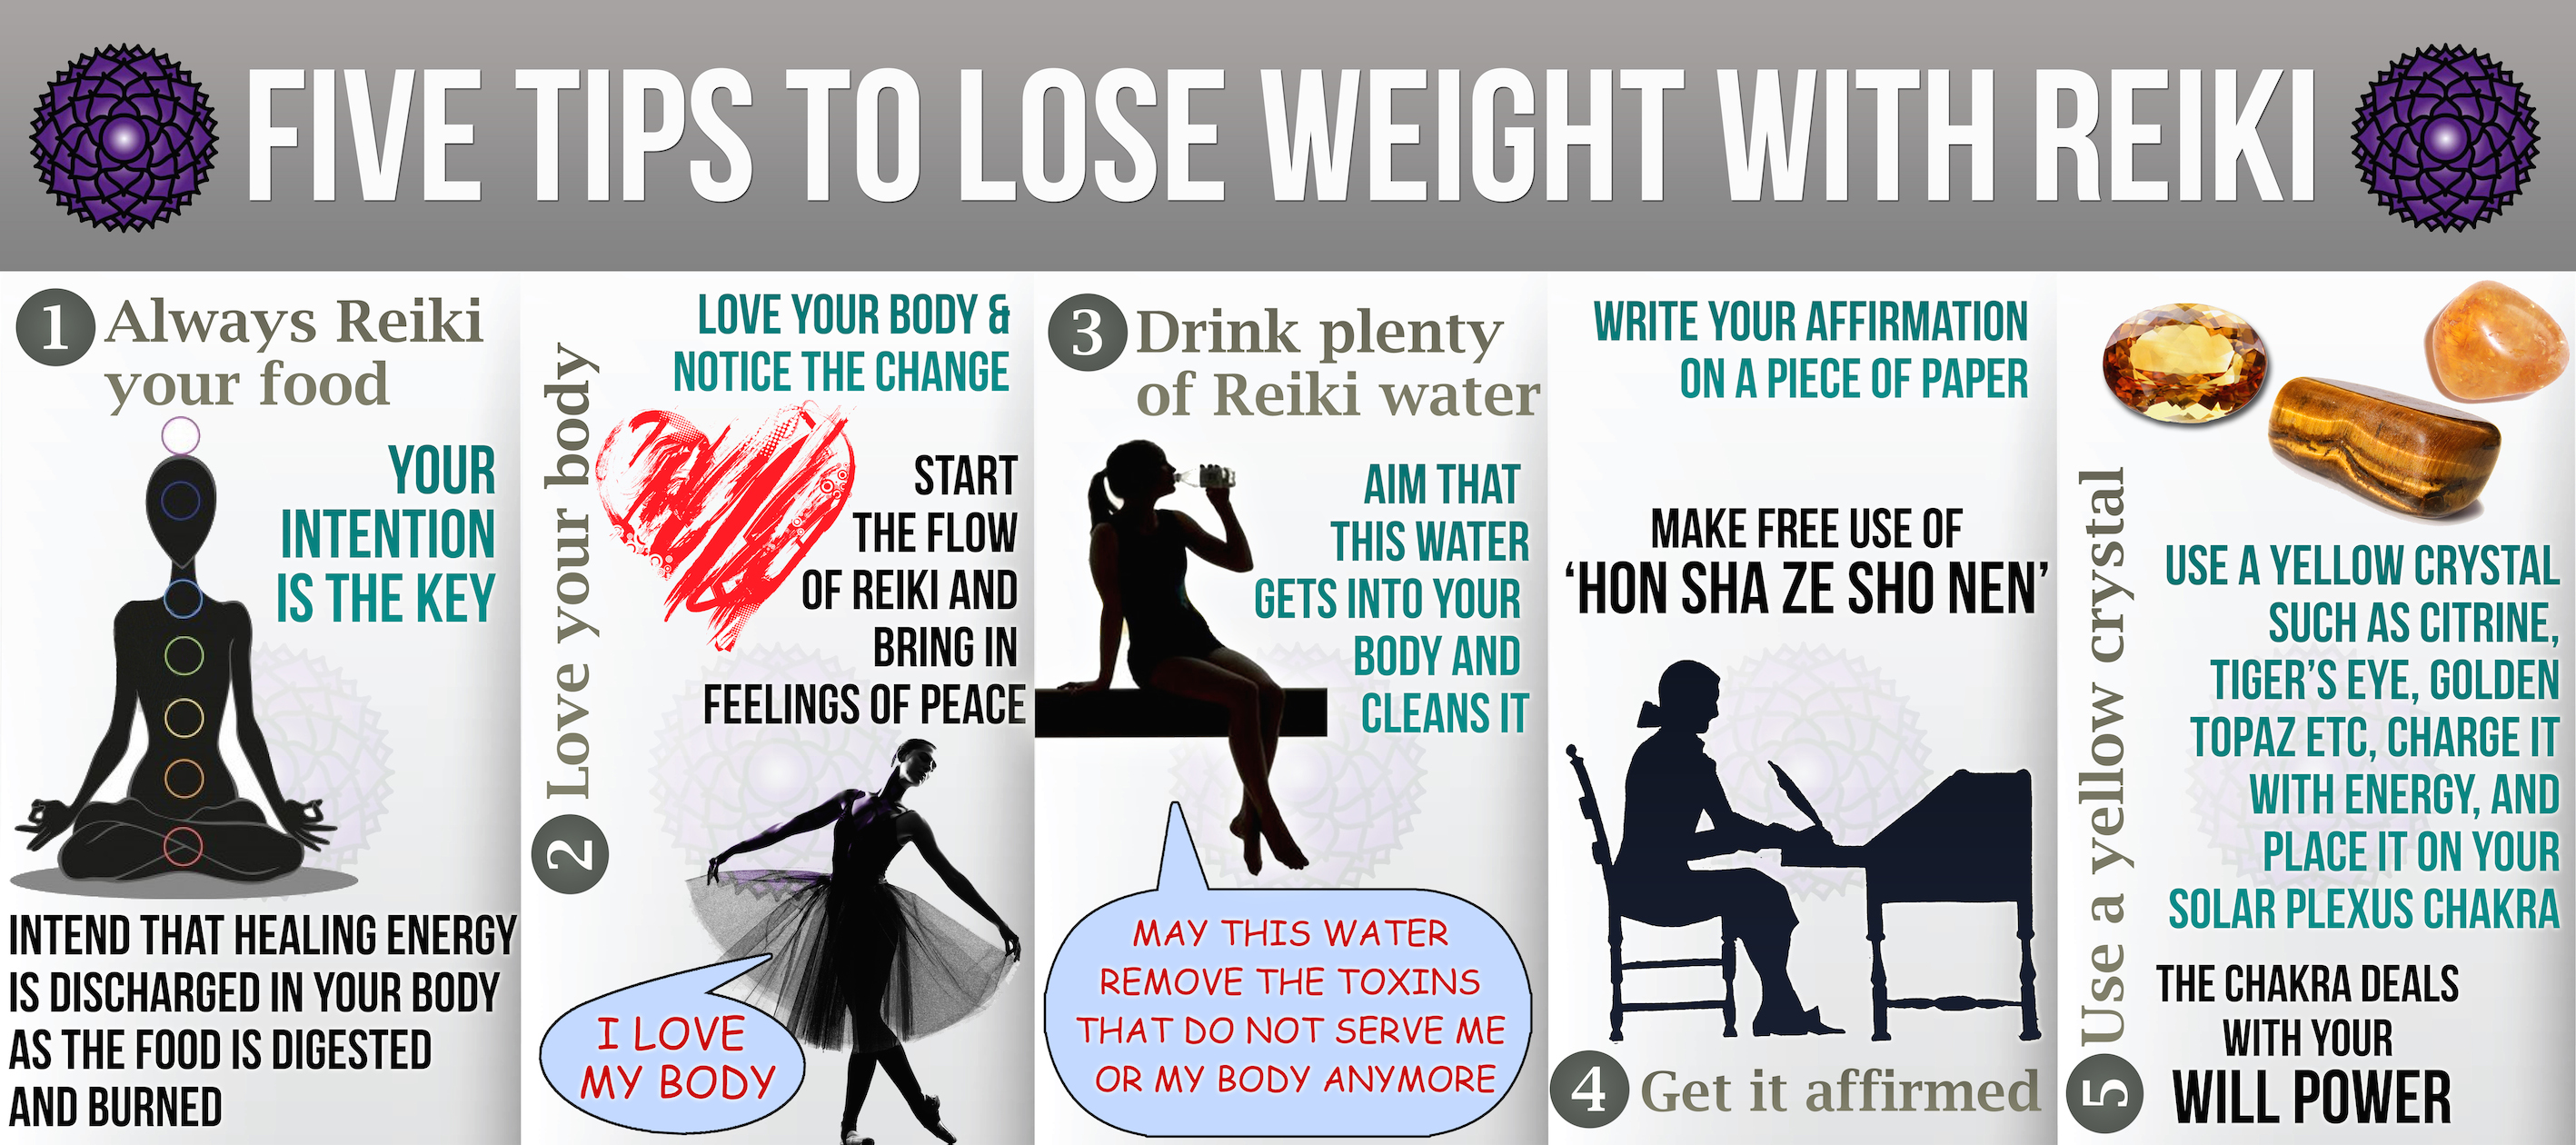 5 Tips to Lose Weight with Reiki